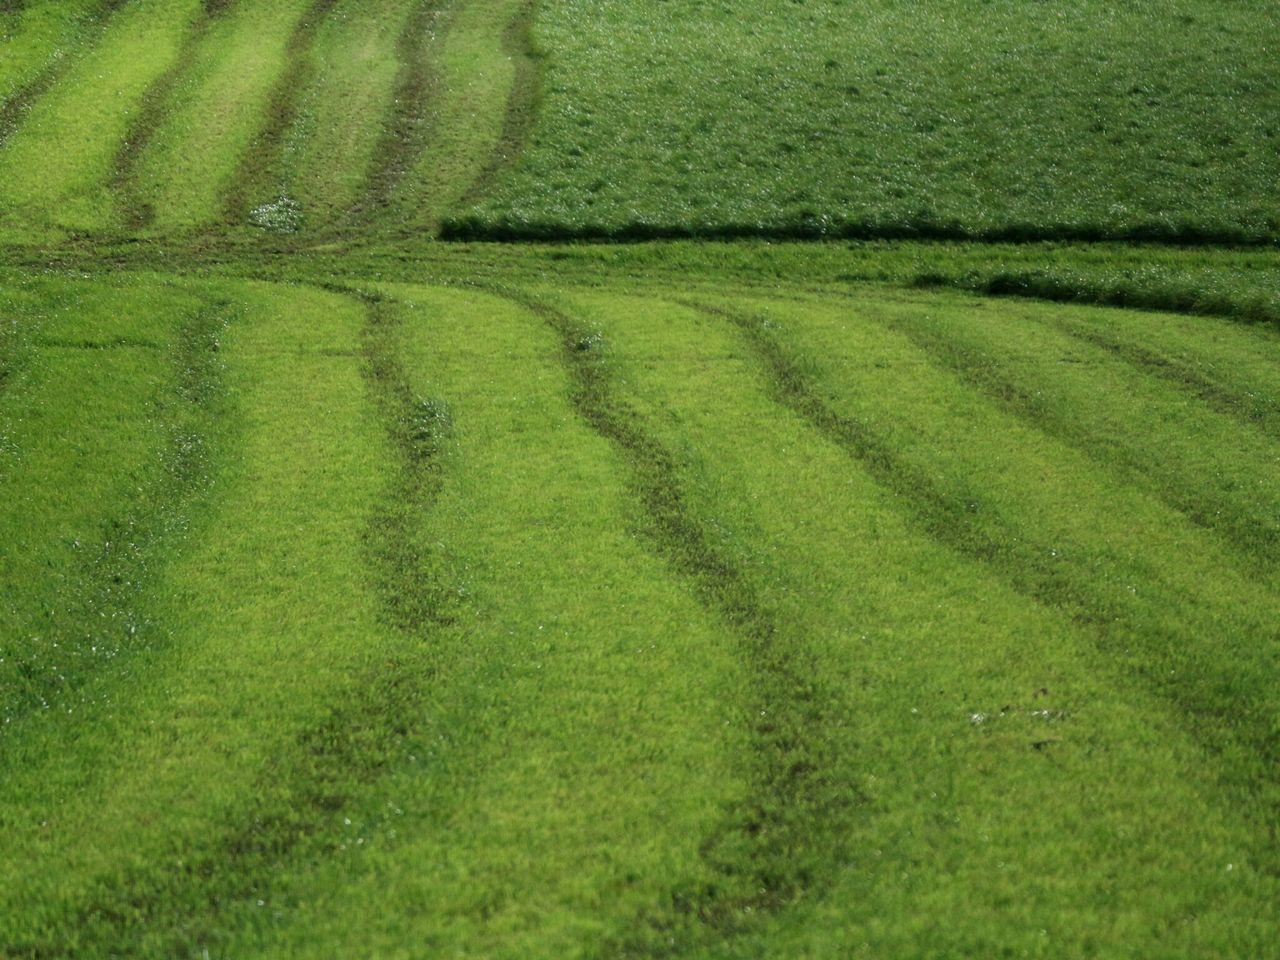 Green grass + Fields Grassfield Grassland Fodder Agricultural Land Slurry Lines Green Color Backgrounds Full Frame Nature Growth No People Beauty In Nature Outdoors Close-up Day Clonakilty  West Cork Wildatlanticway Ireland